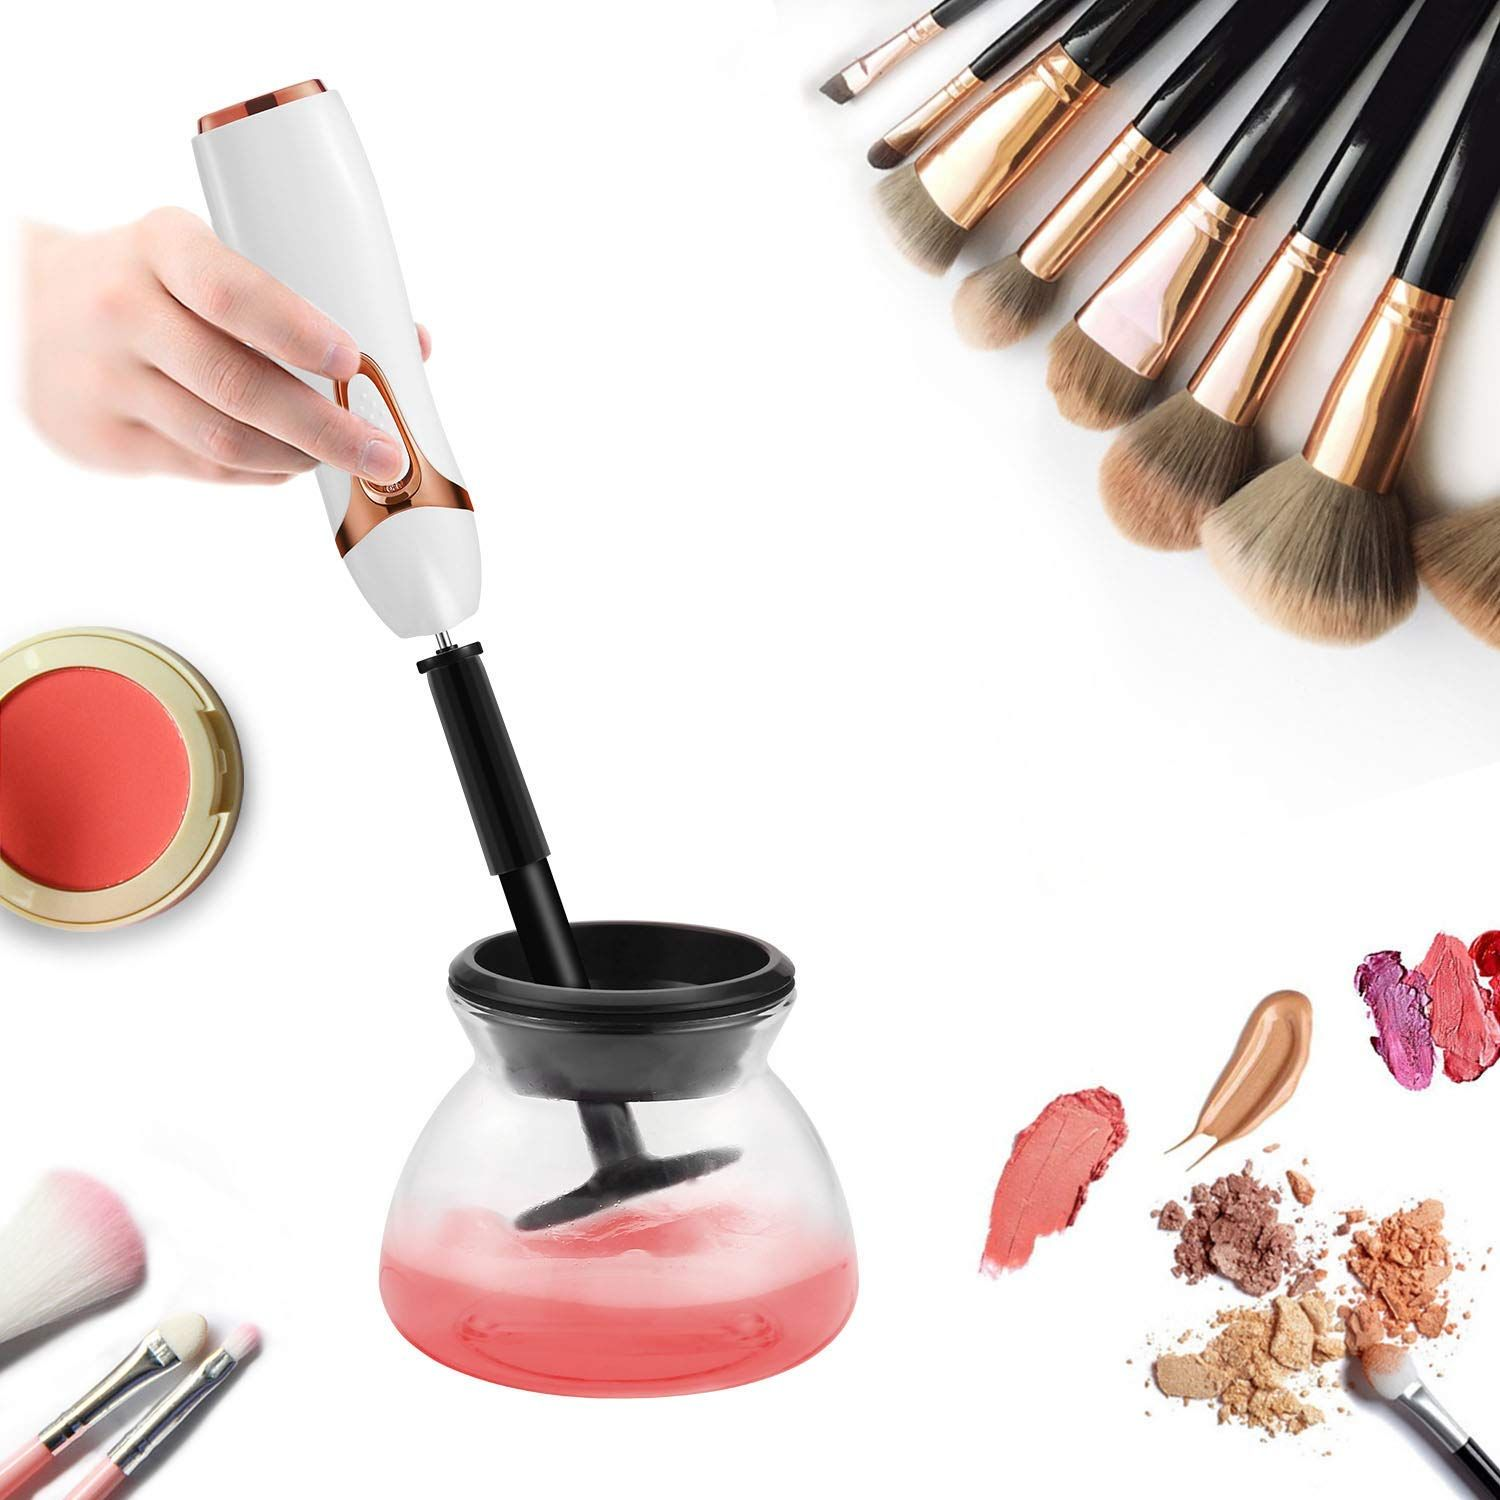 Https Amzn To 2c3xtin Makeup Brushes Cleaner And Dryer